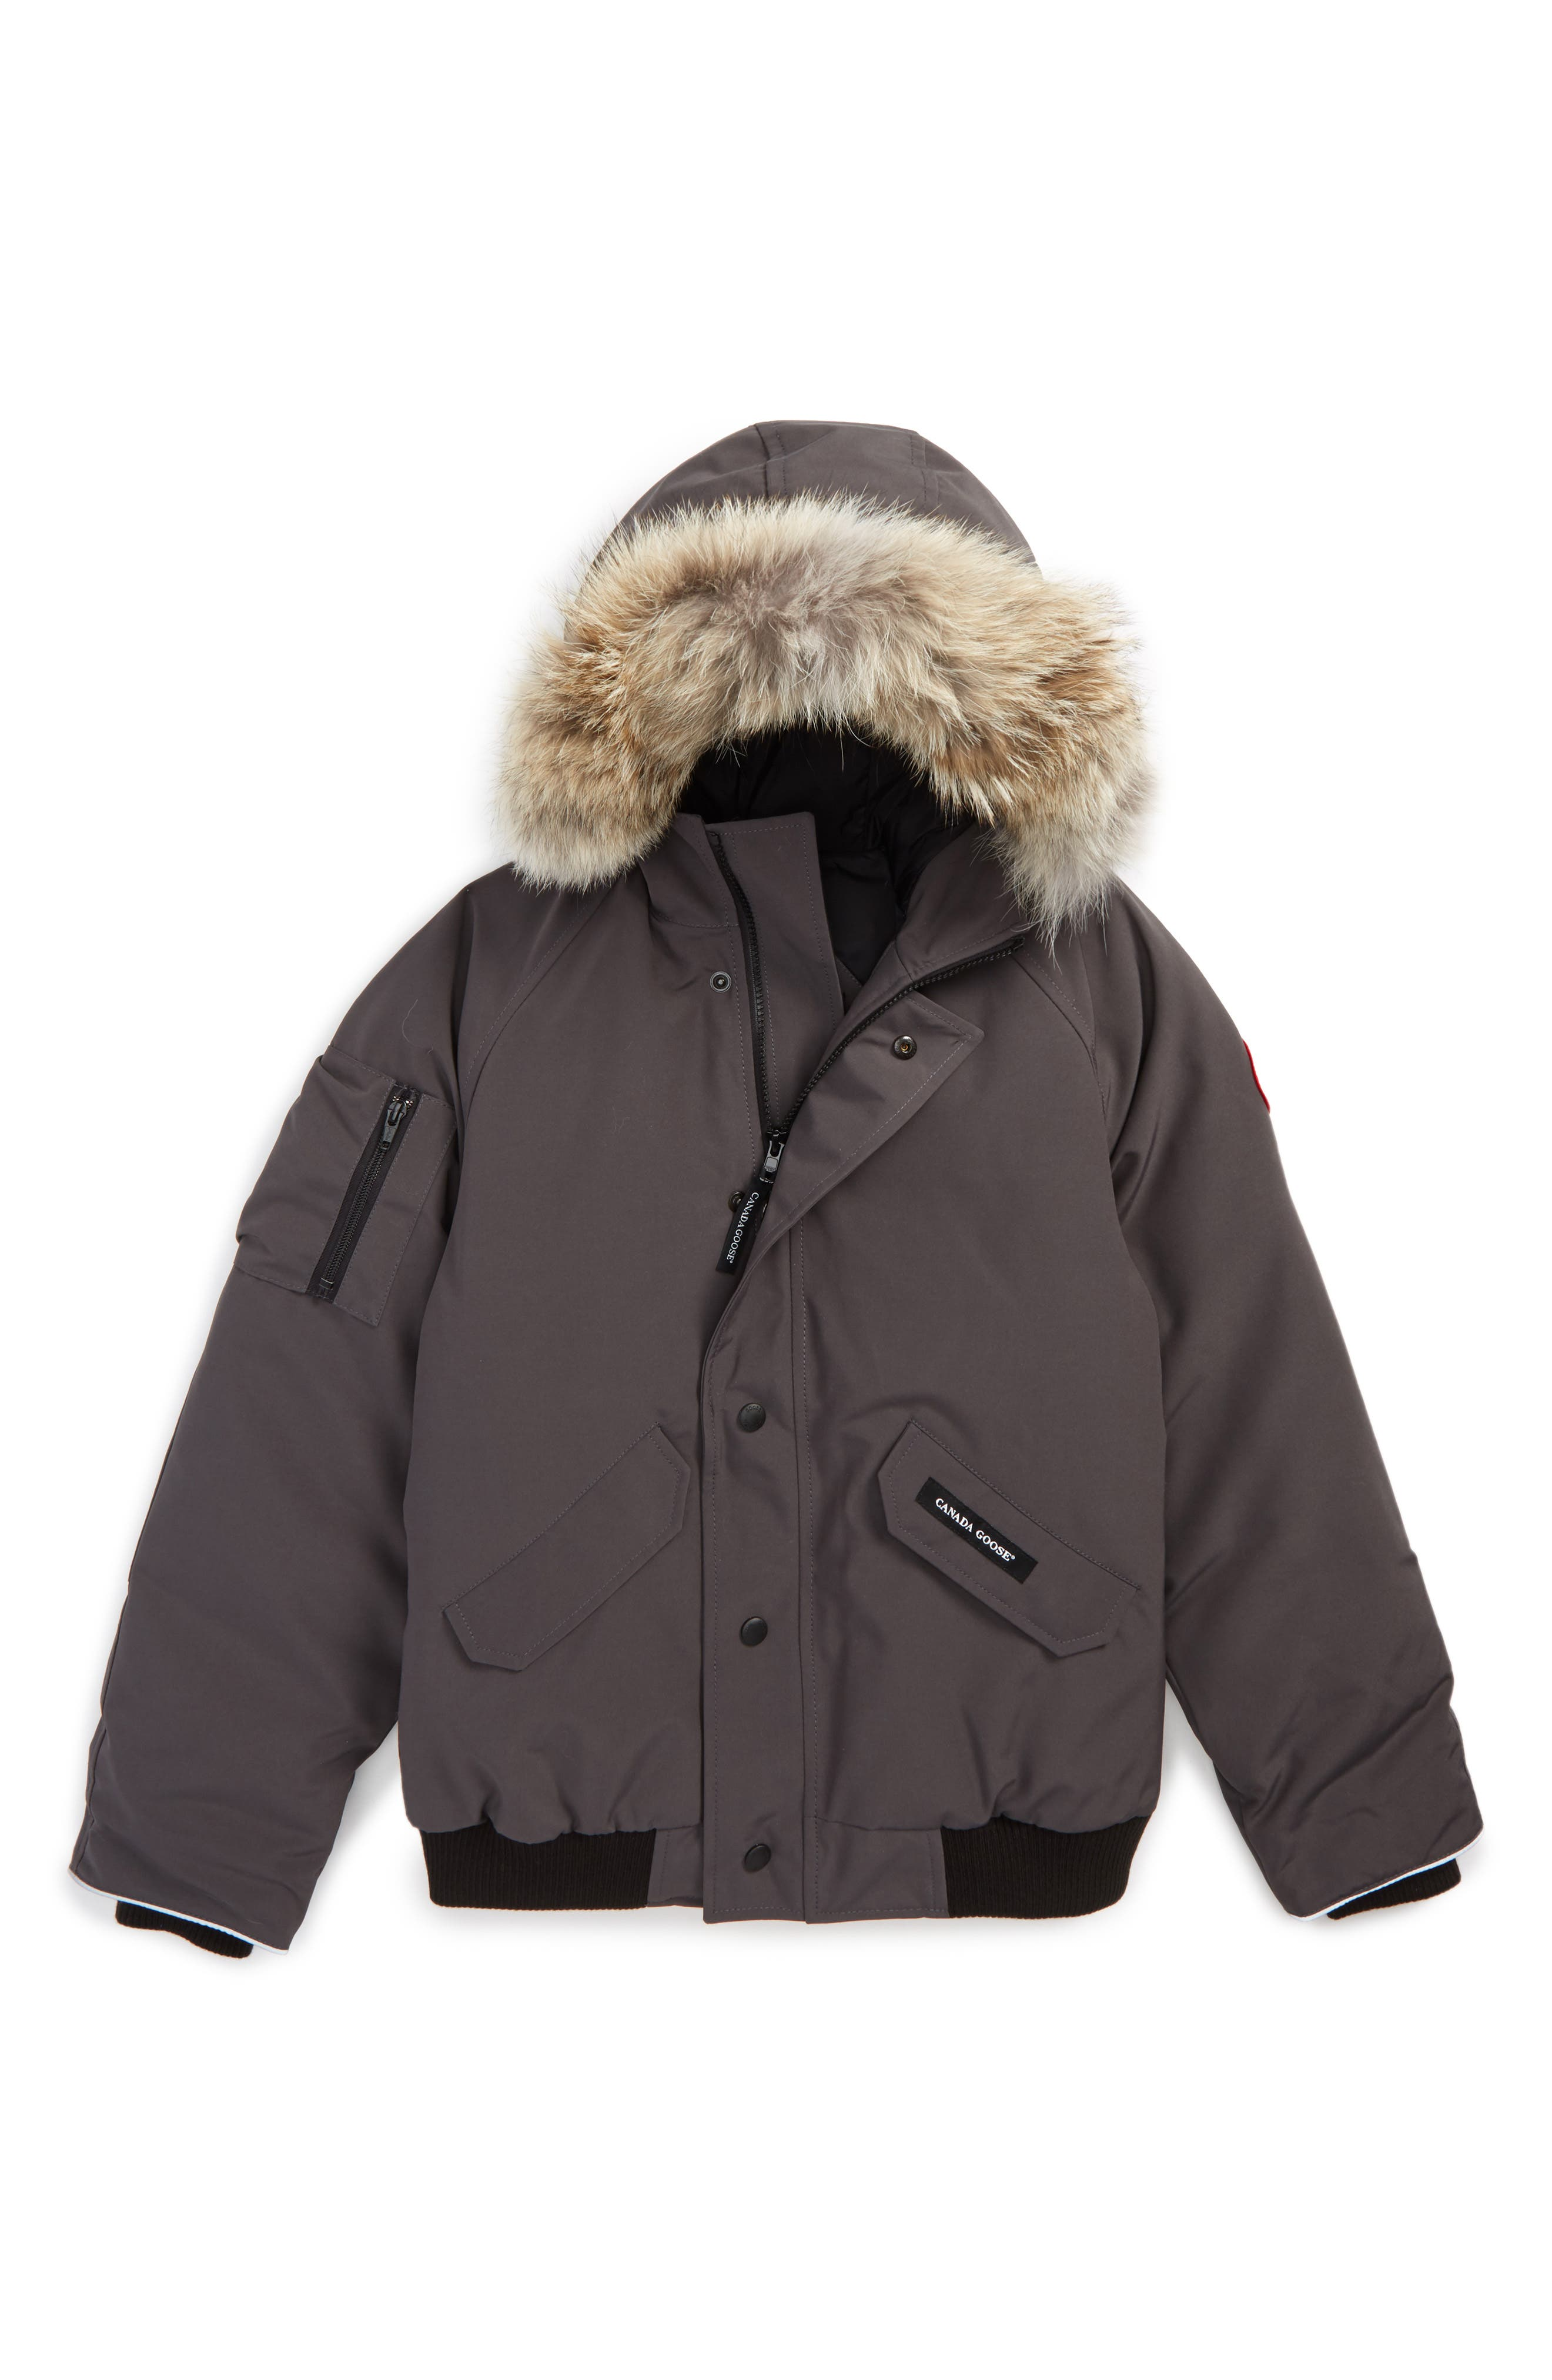 'Rundle' Down Bomber Jacket with Genuine Coyote Fur Trim,                             Main thumbnail 1, color,                             GRAPHITE